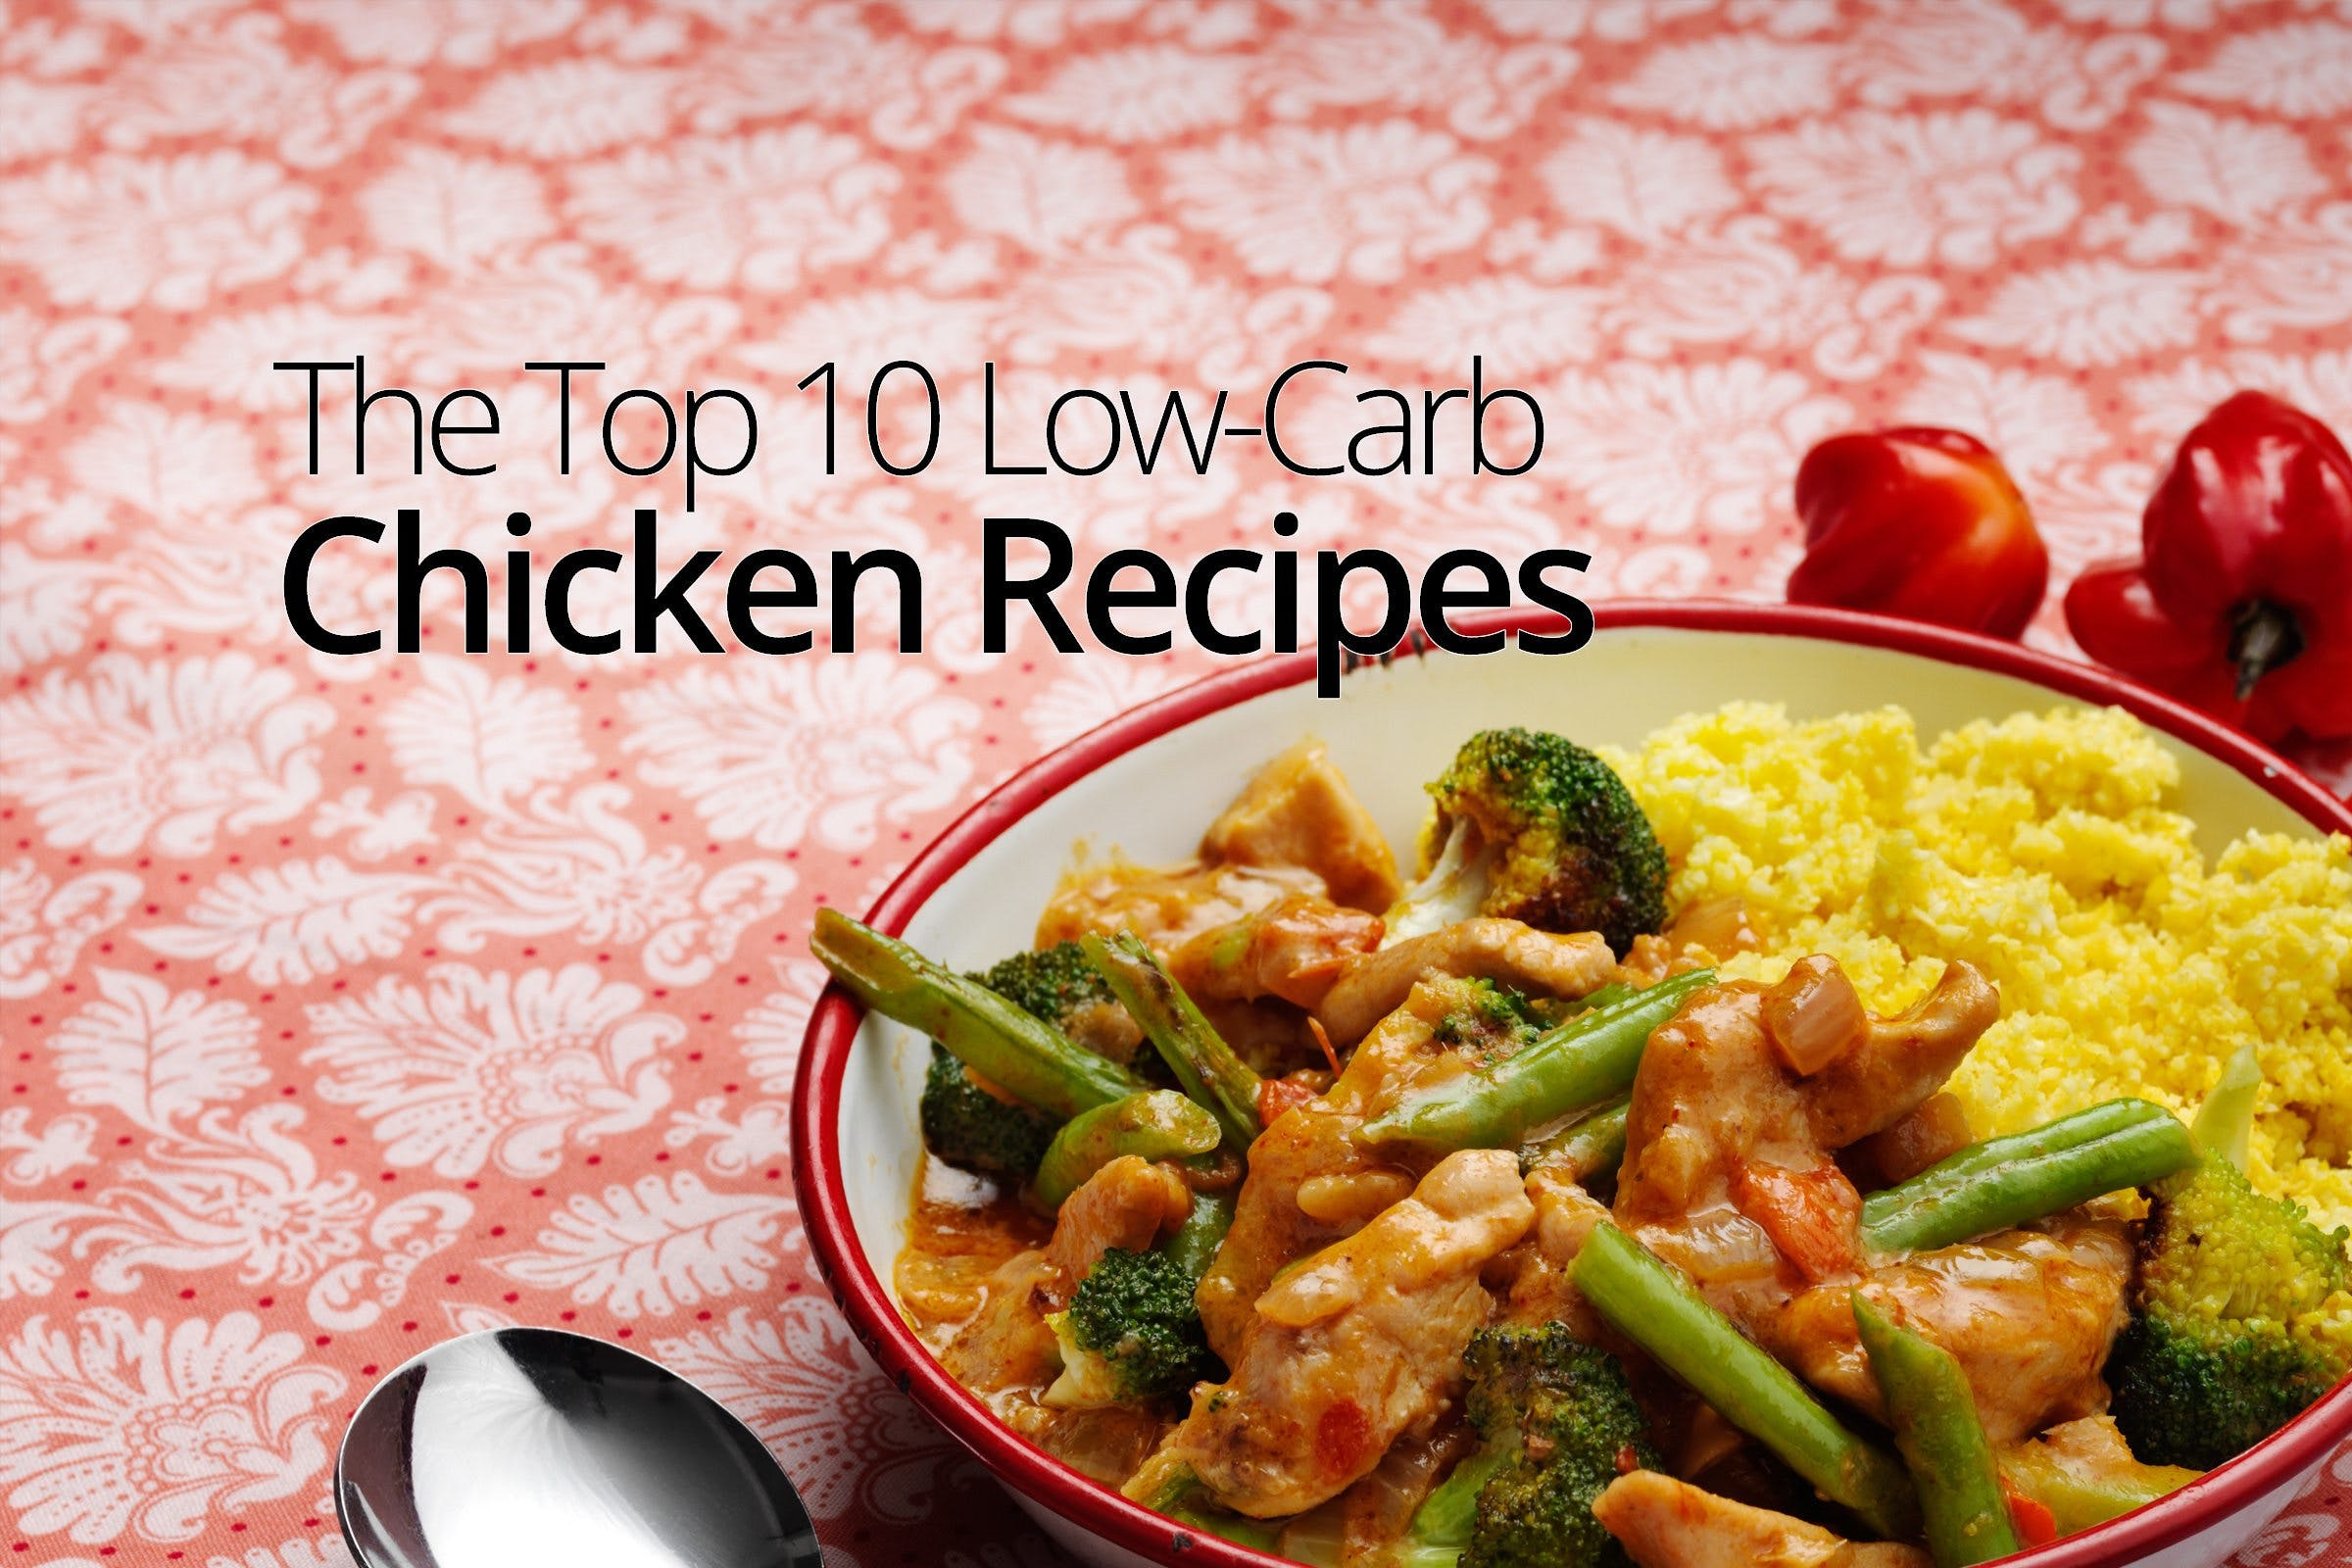 Top 10 low-carb chicken recipes